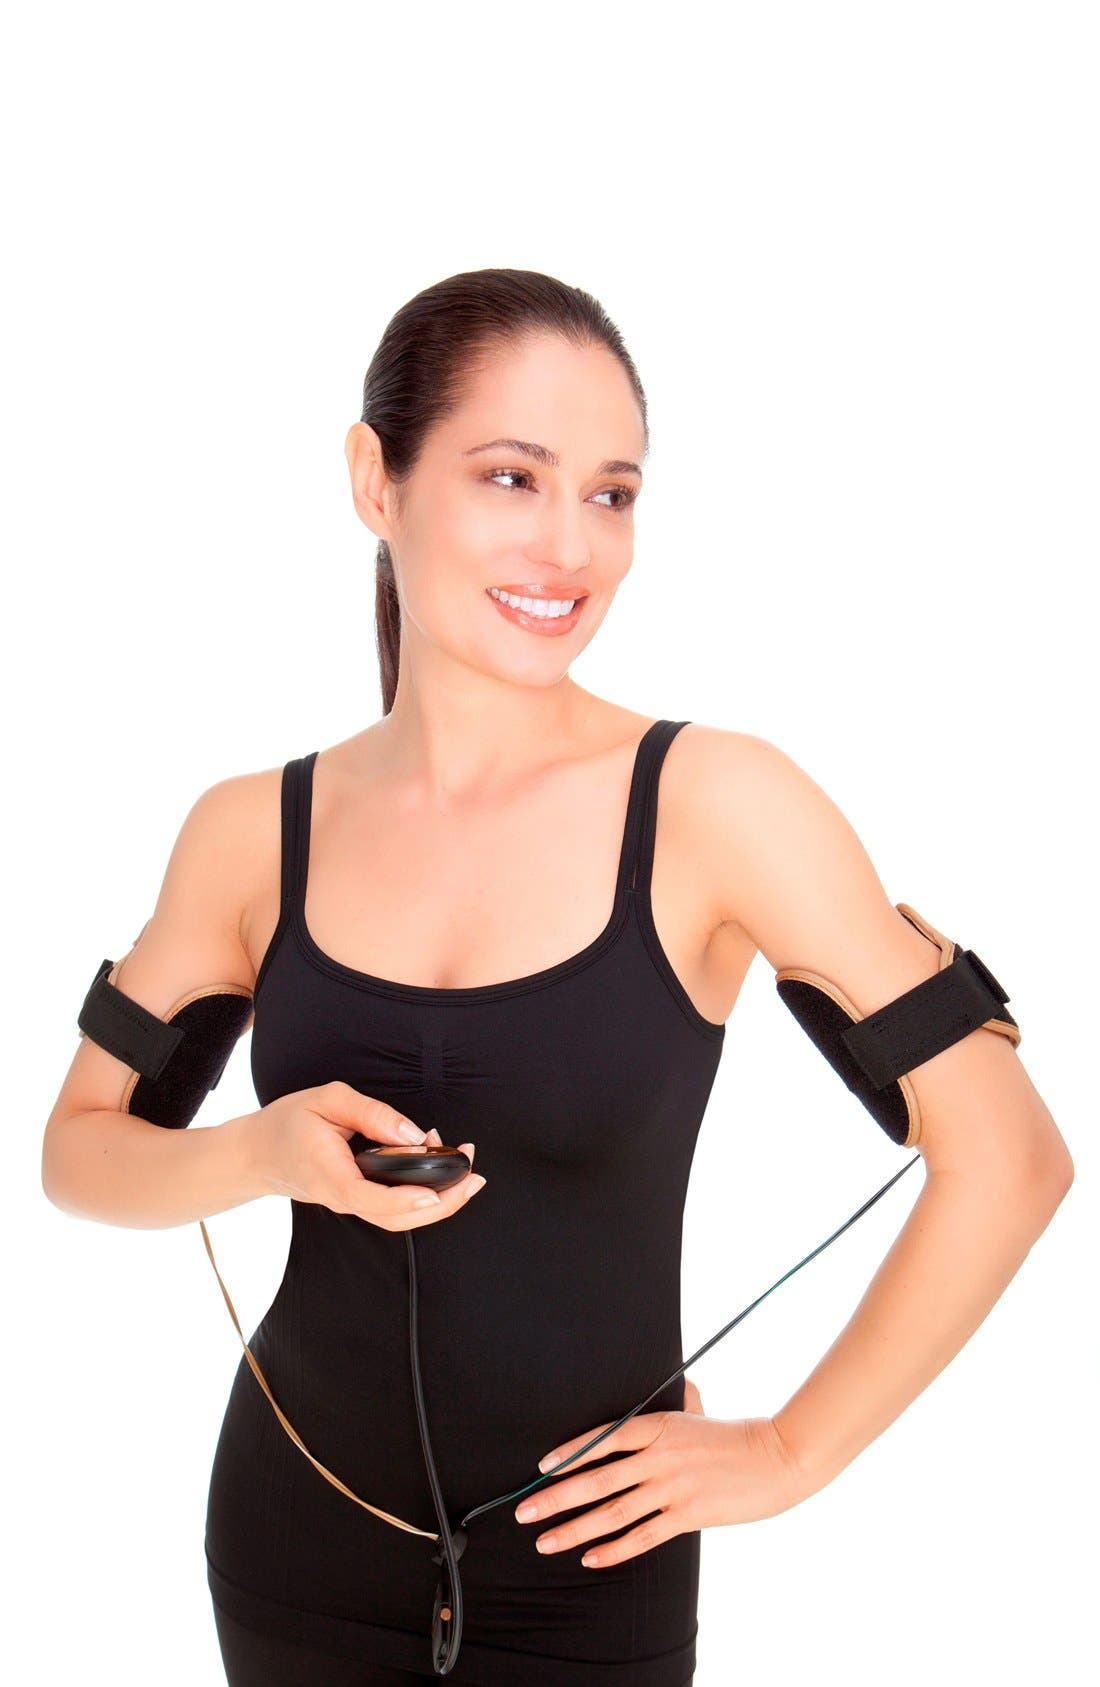 'Slendertone<sup>®</sup> Arms7' Unisex Arm Muscle Trainer,                             Alternate thumbnail 2, color,                             000